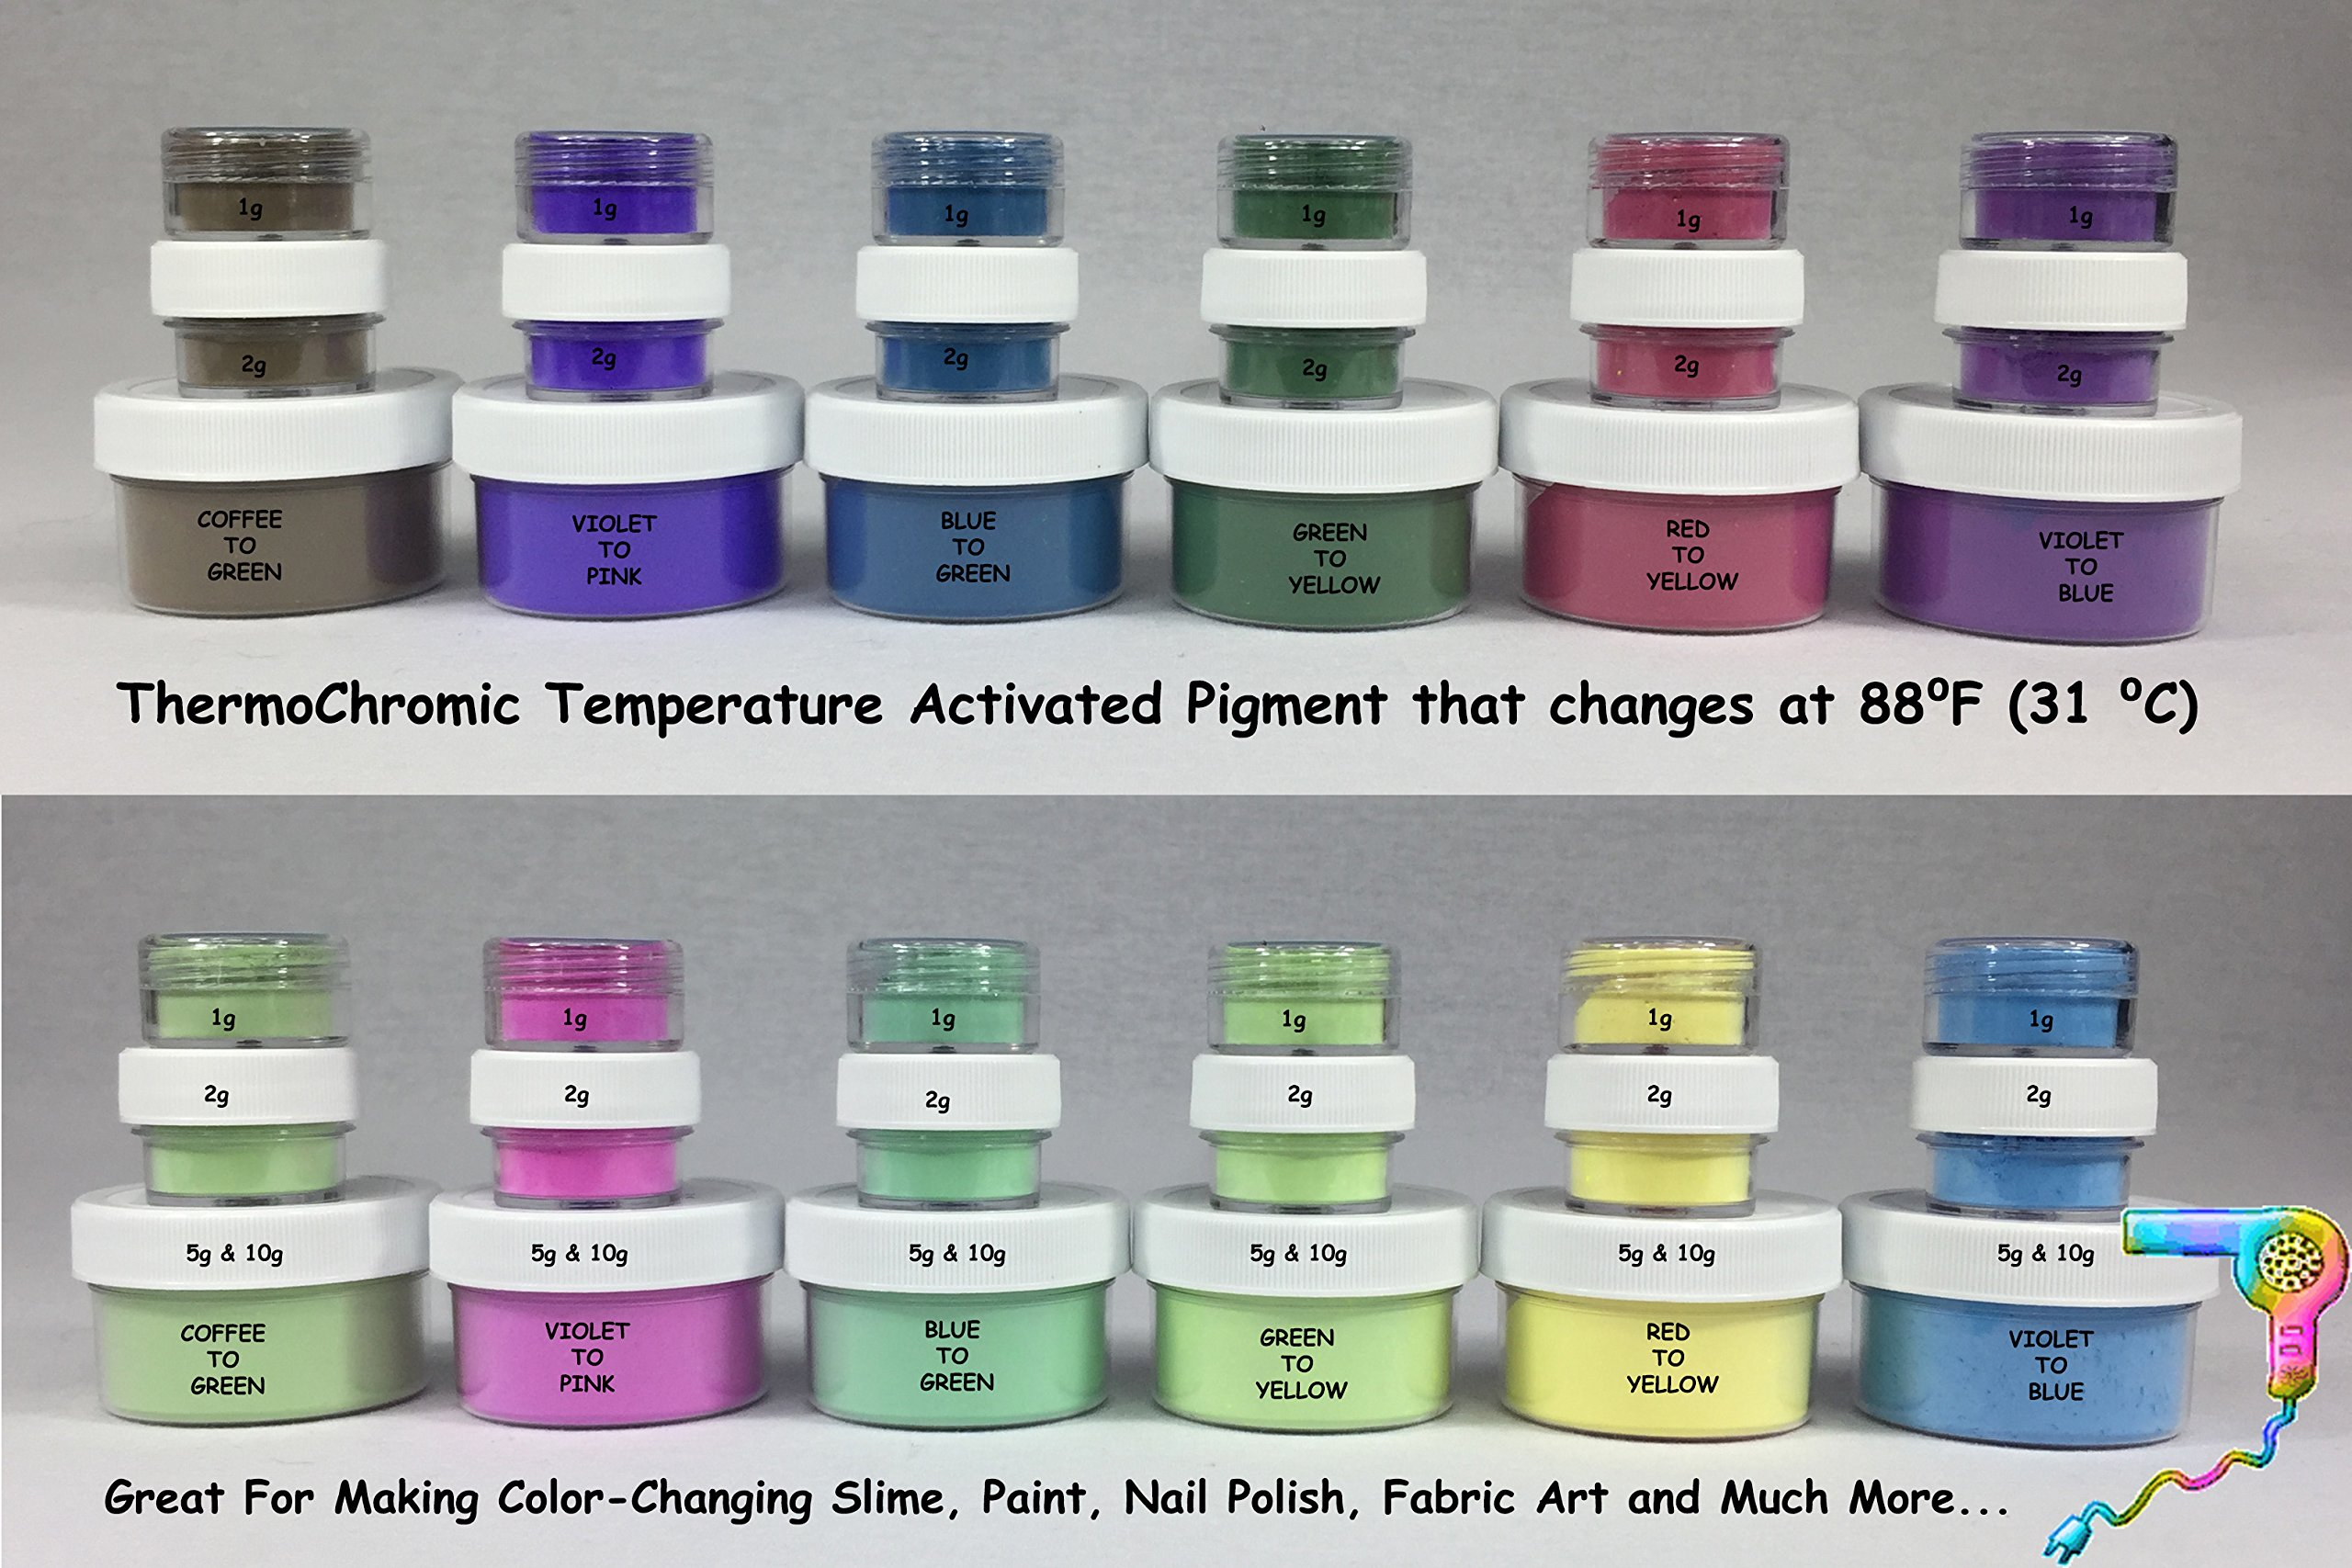 100g of ThermoChromic Temperature Activated Pigment that changes at 88⁰F (31 ⁰C) - Great for making color-changing slime, Paint, Nail Polish, Fabric Art and More (Custom 10 X 10g, MIXED COLORS) by Unknown (Image #3)